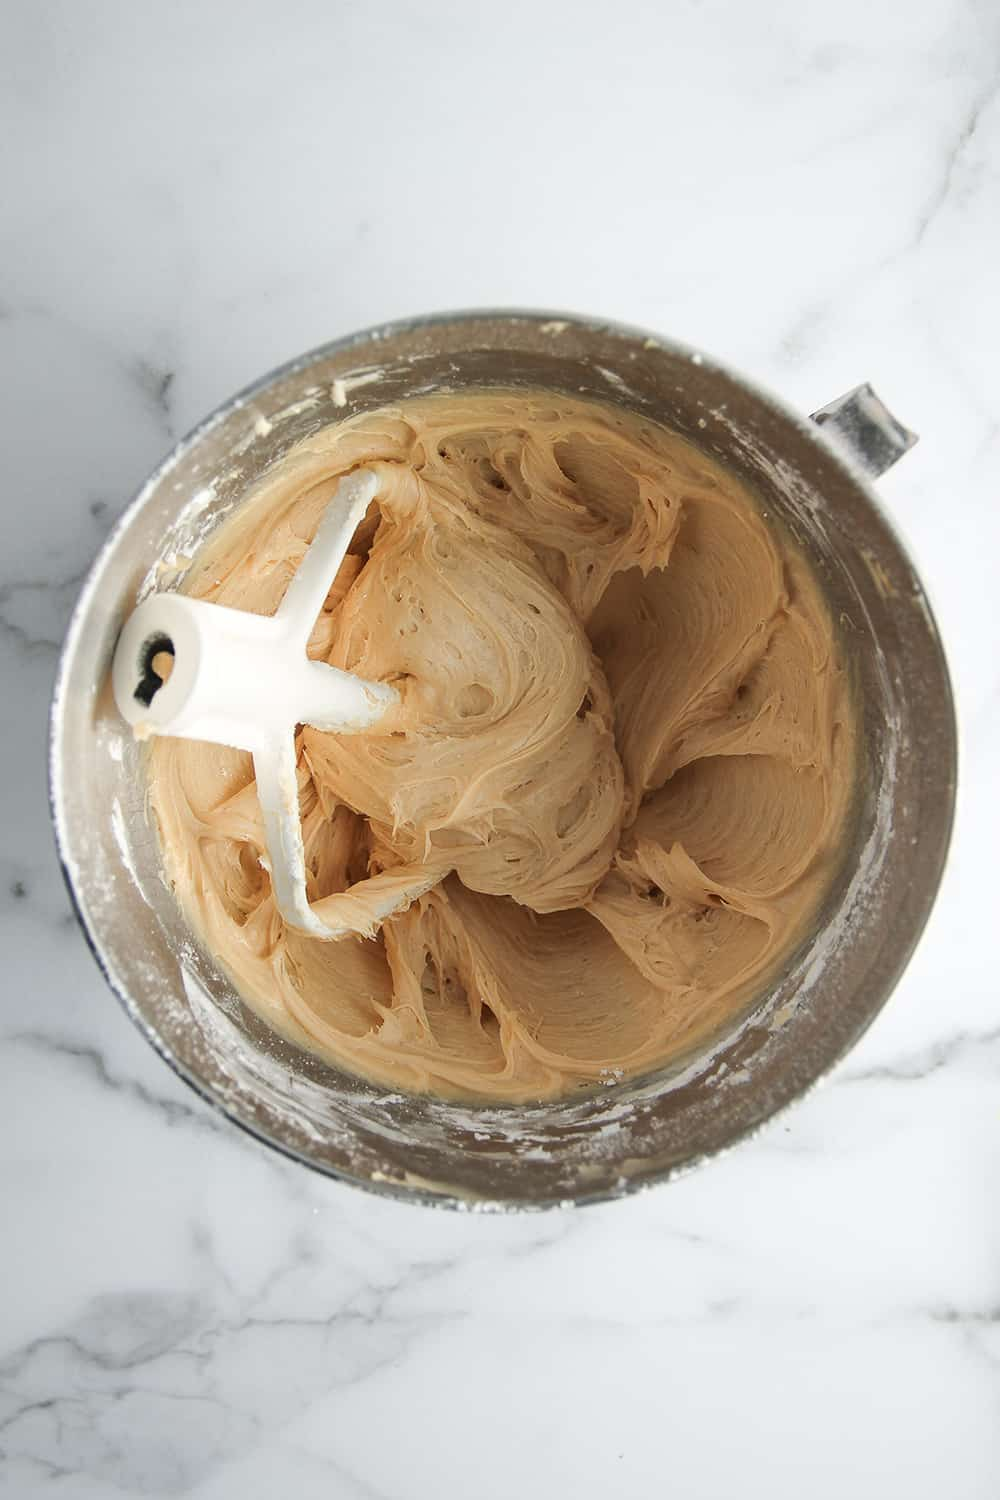 Peanut butter cream cheese frosting is a delicious addition to Peanut Butter Cake